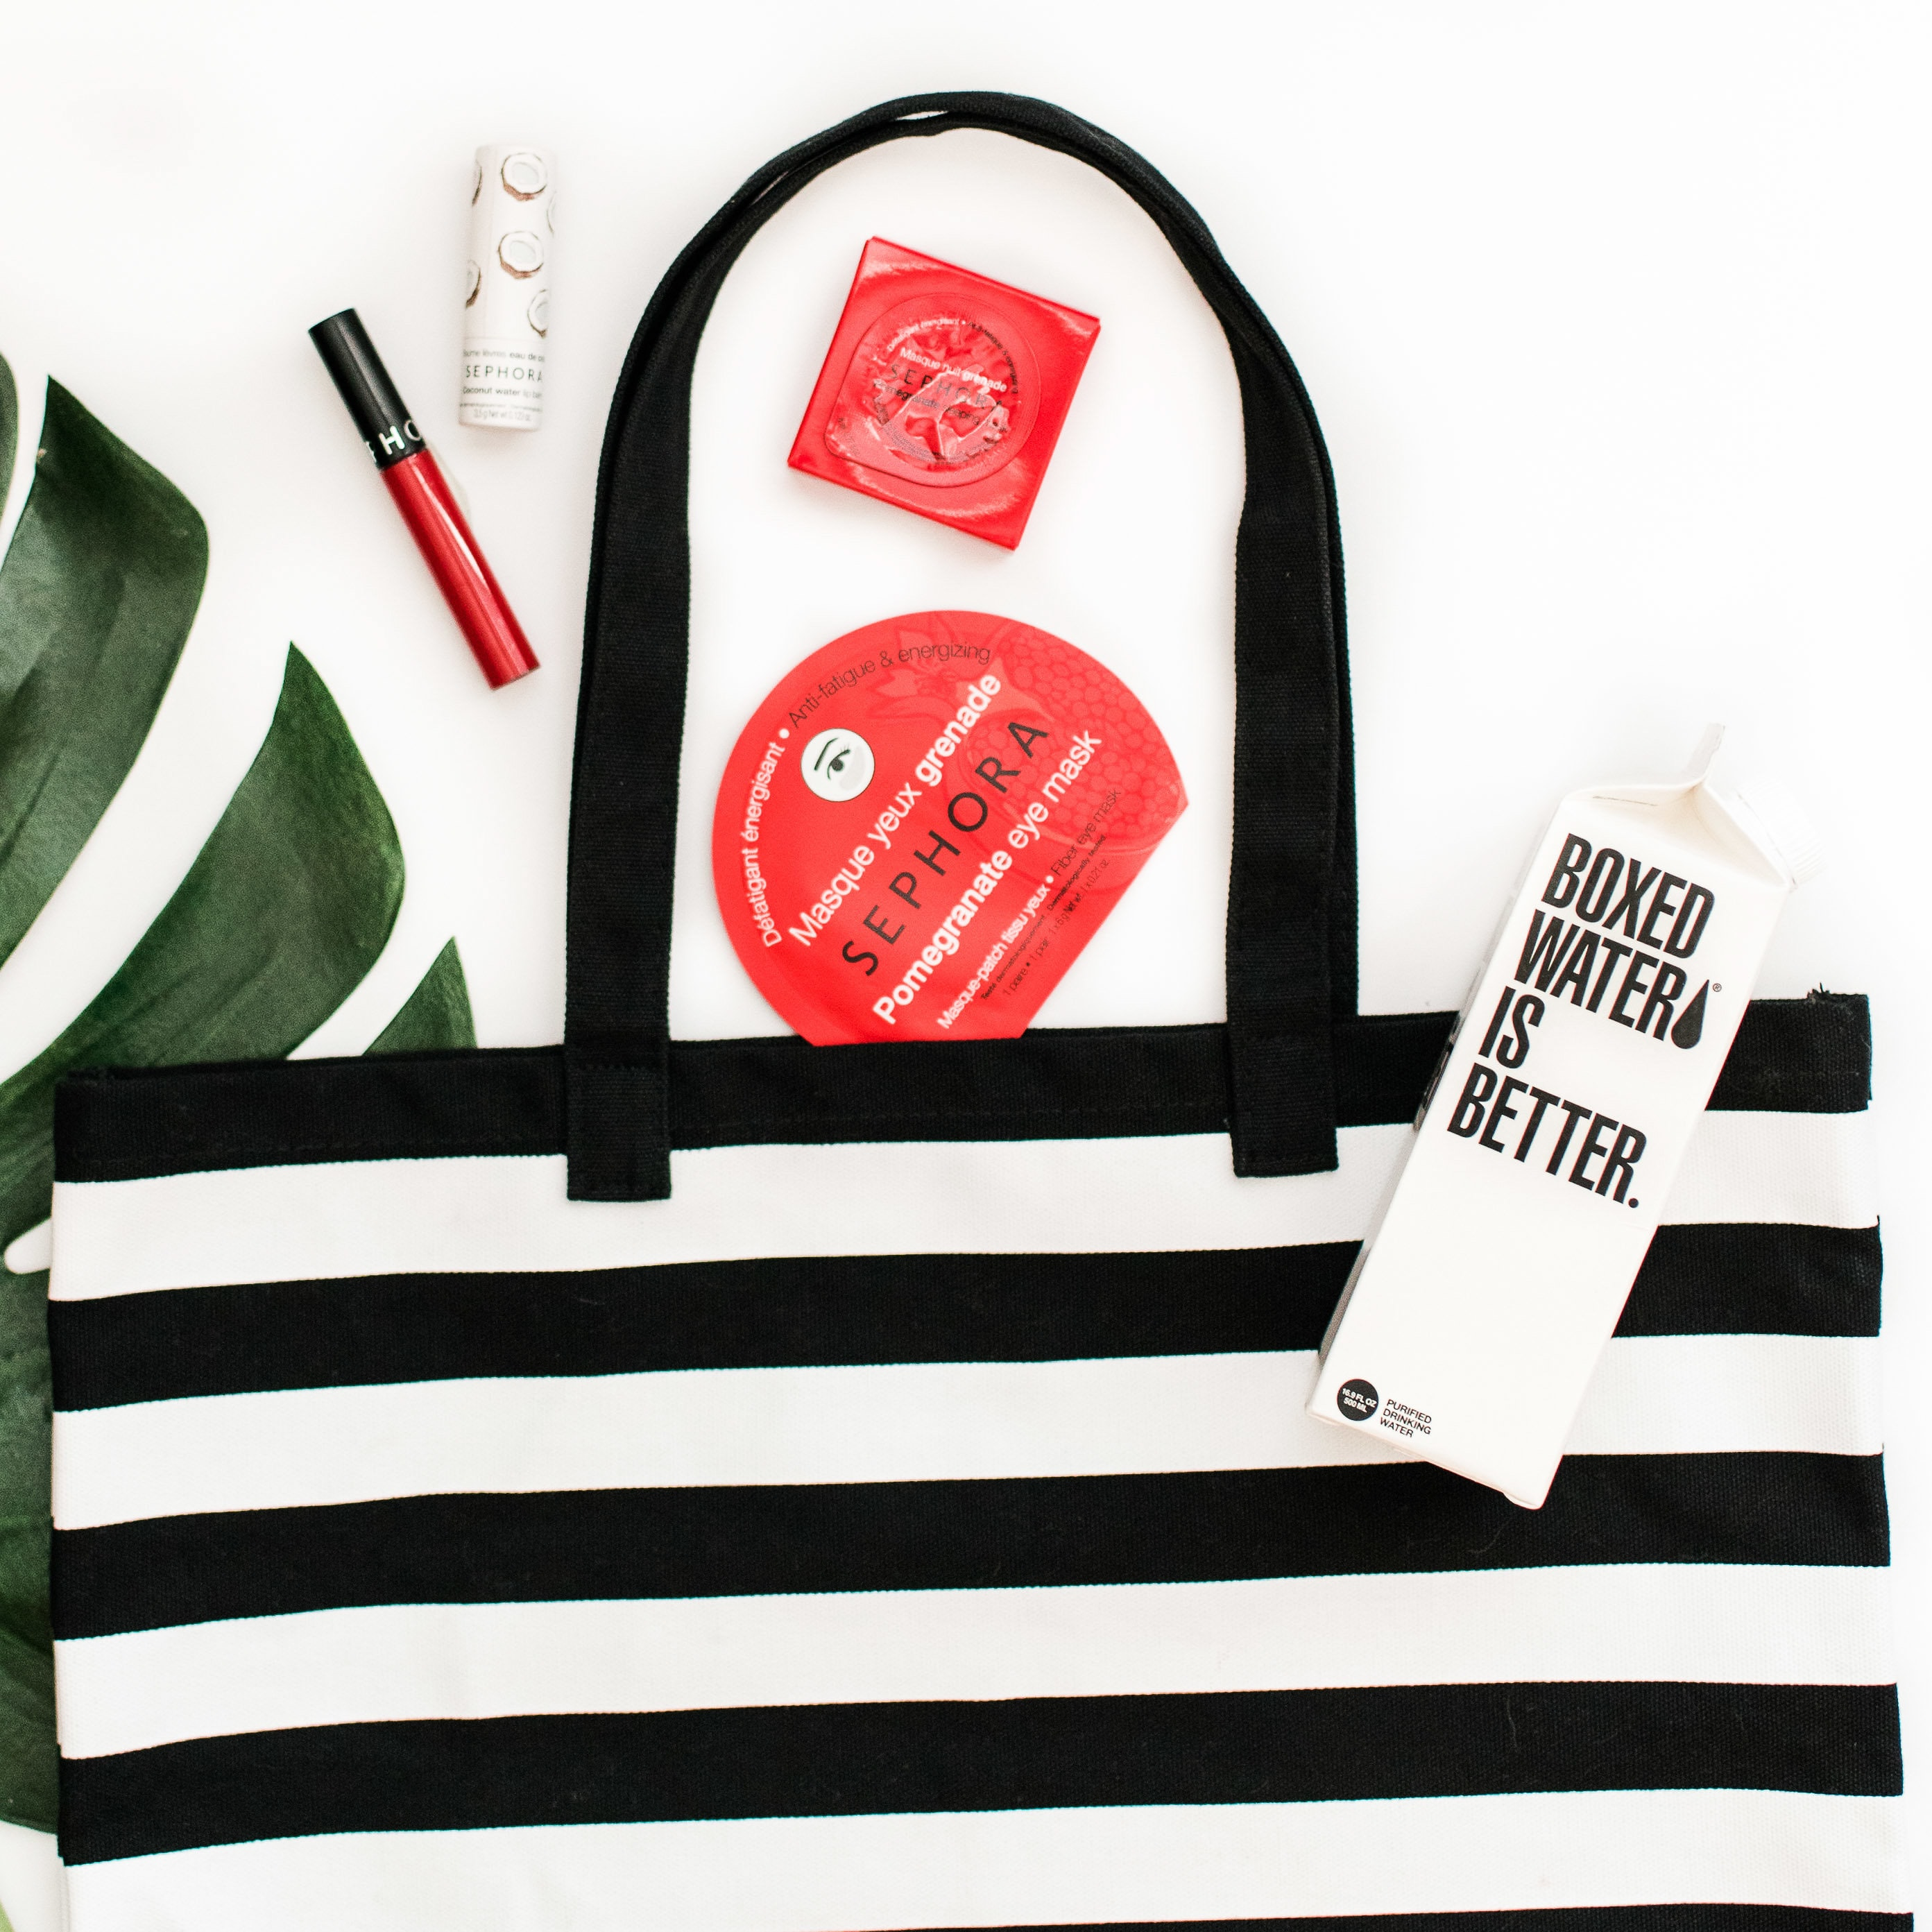 A black and white striped handbag with Sephora and Boxed Water products displayed next to it